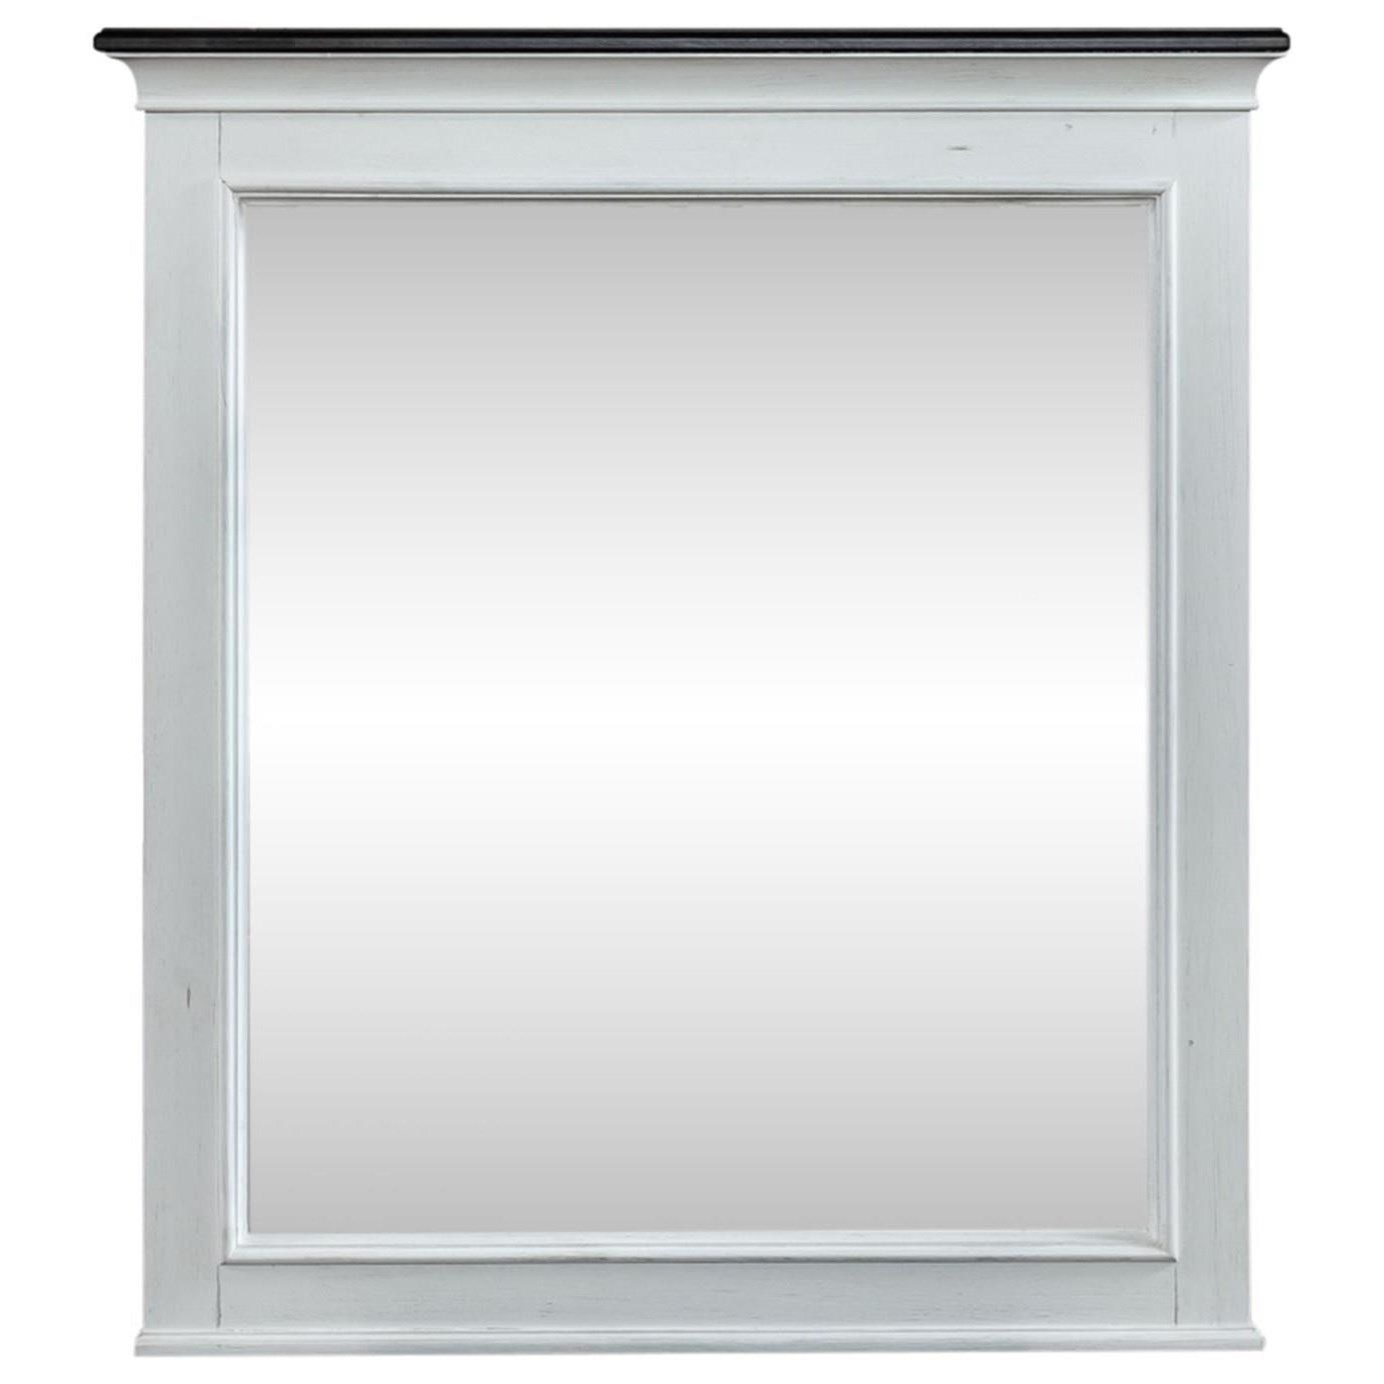 Allyson Park Crown Mirror by Liberty Furniture at Catalog Outlet